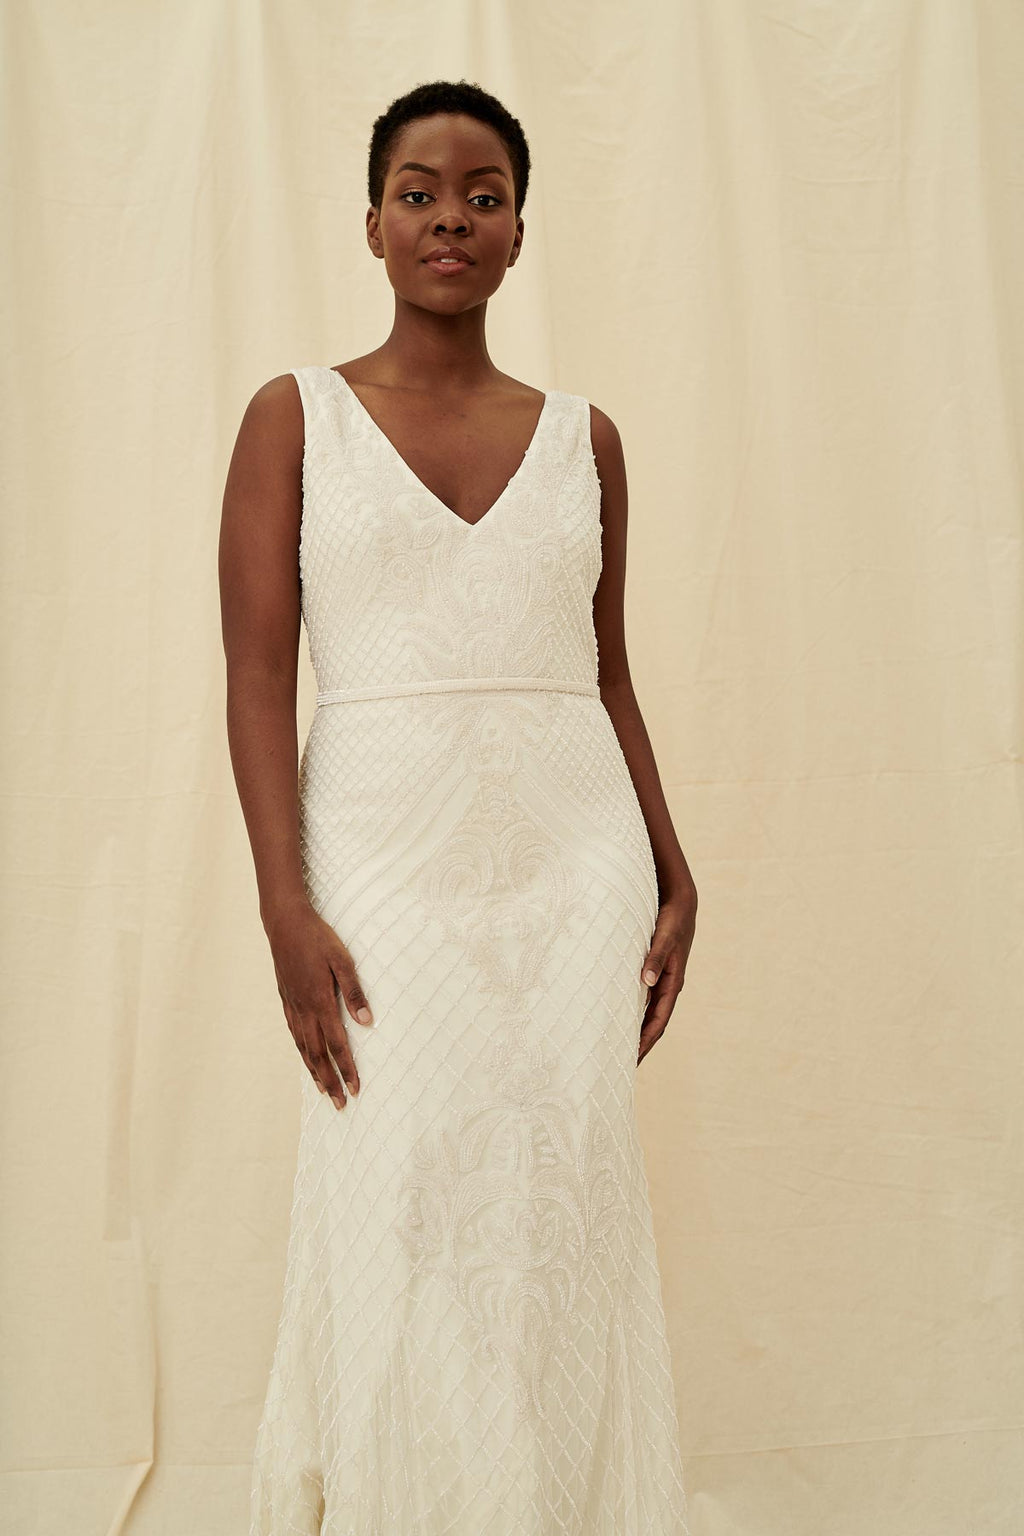 An elegant wedding dress with a simple beaded v neck bodice, scoop back, and fitted silhouette.